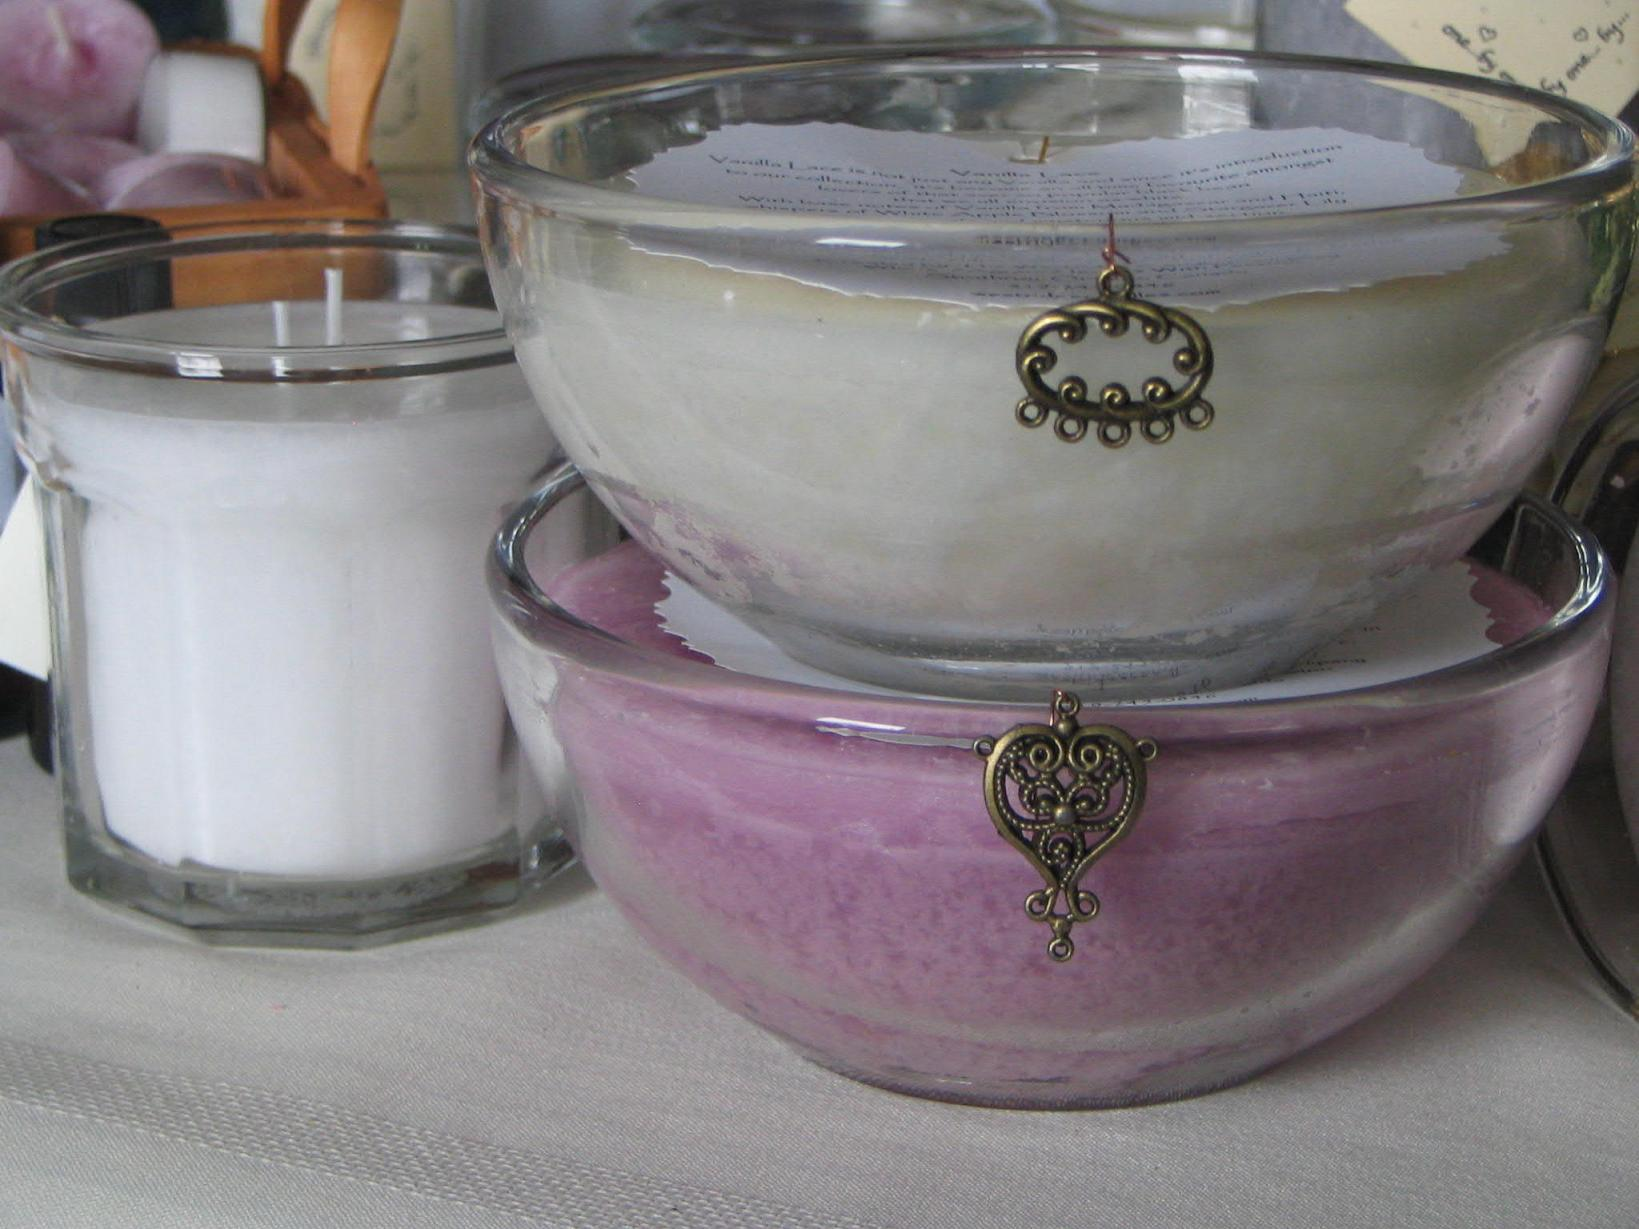 Highly aromatic wholesale scented candles